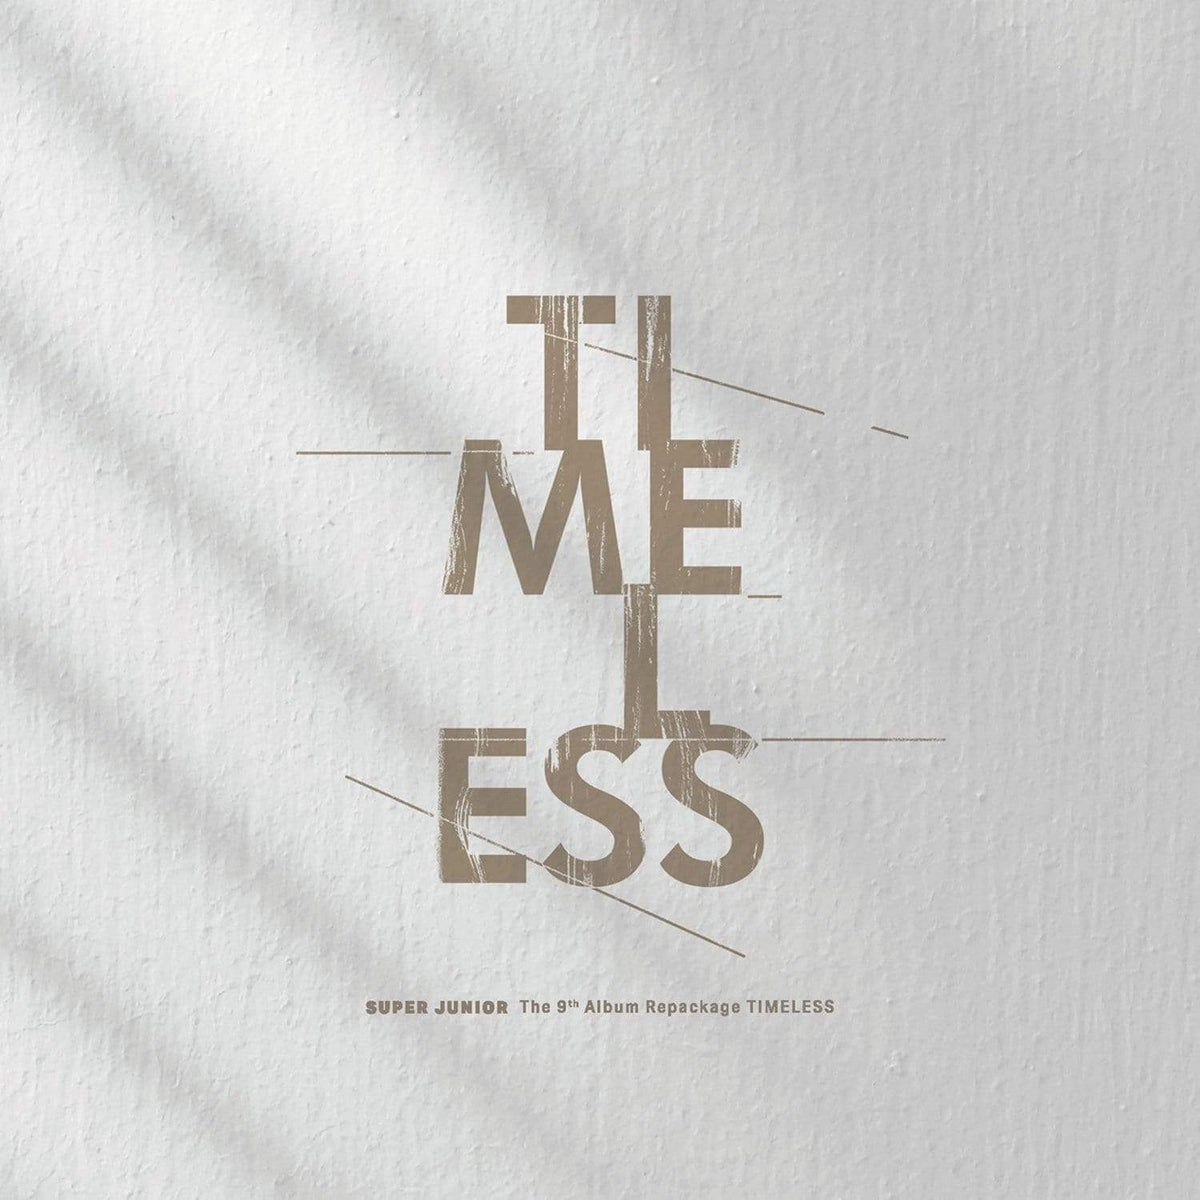 Super Junior - TIMELESS - 9th Album Repackage